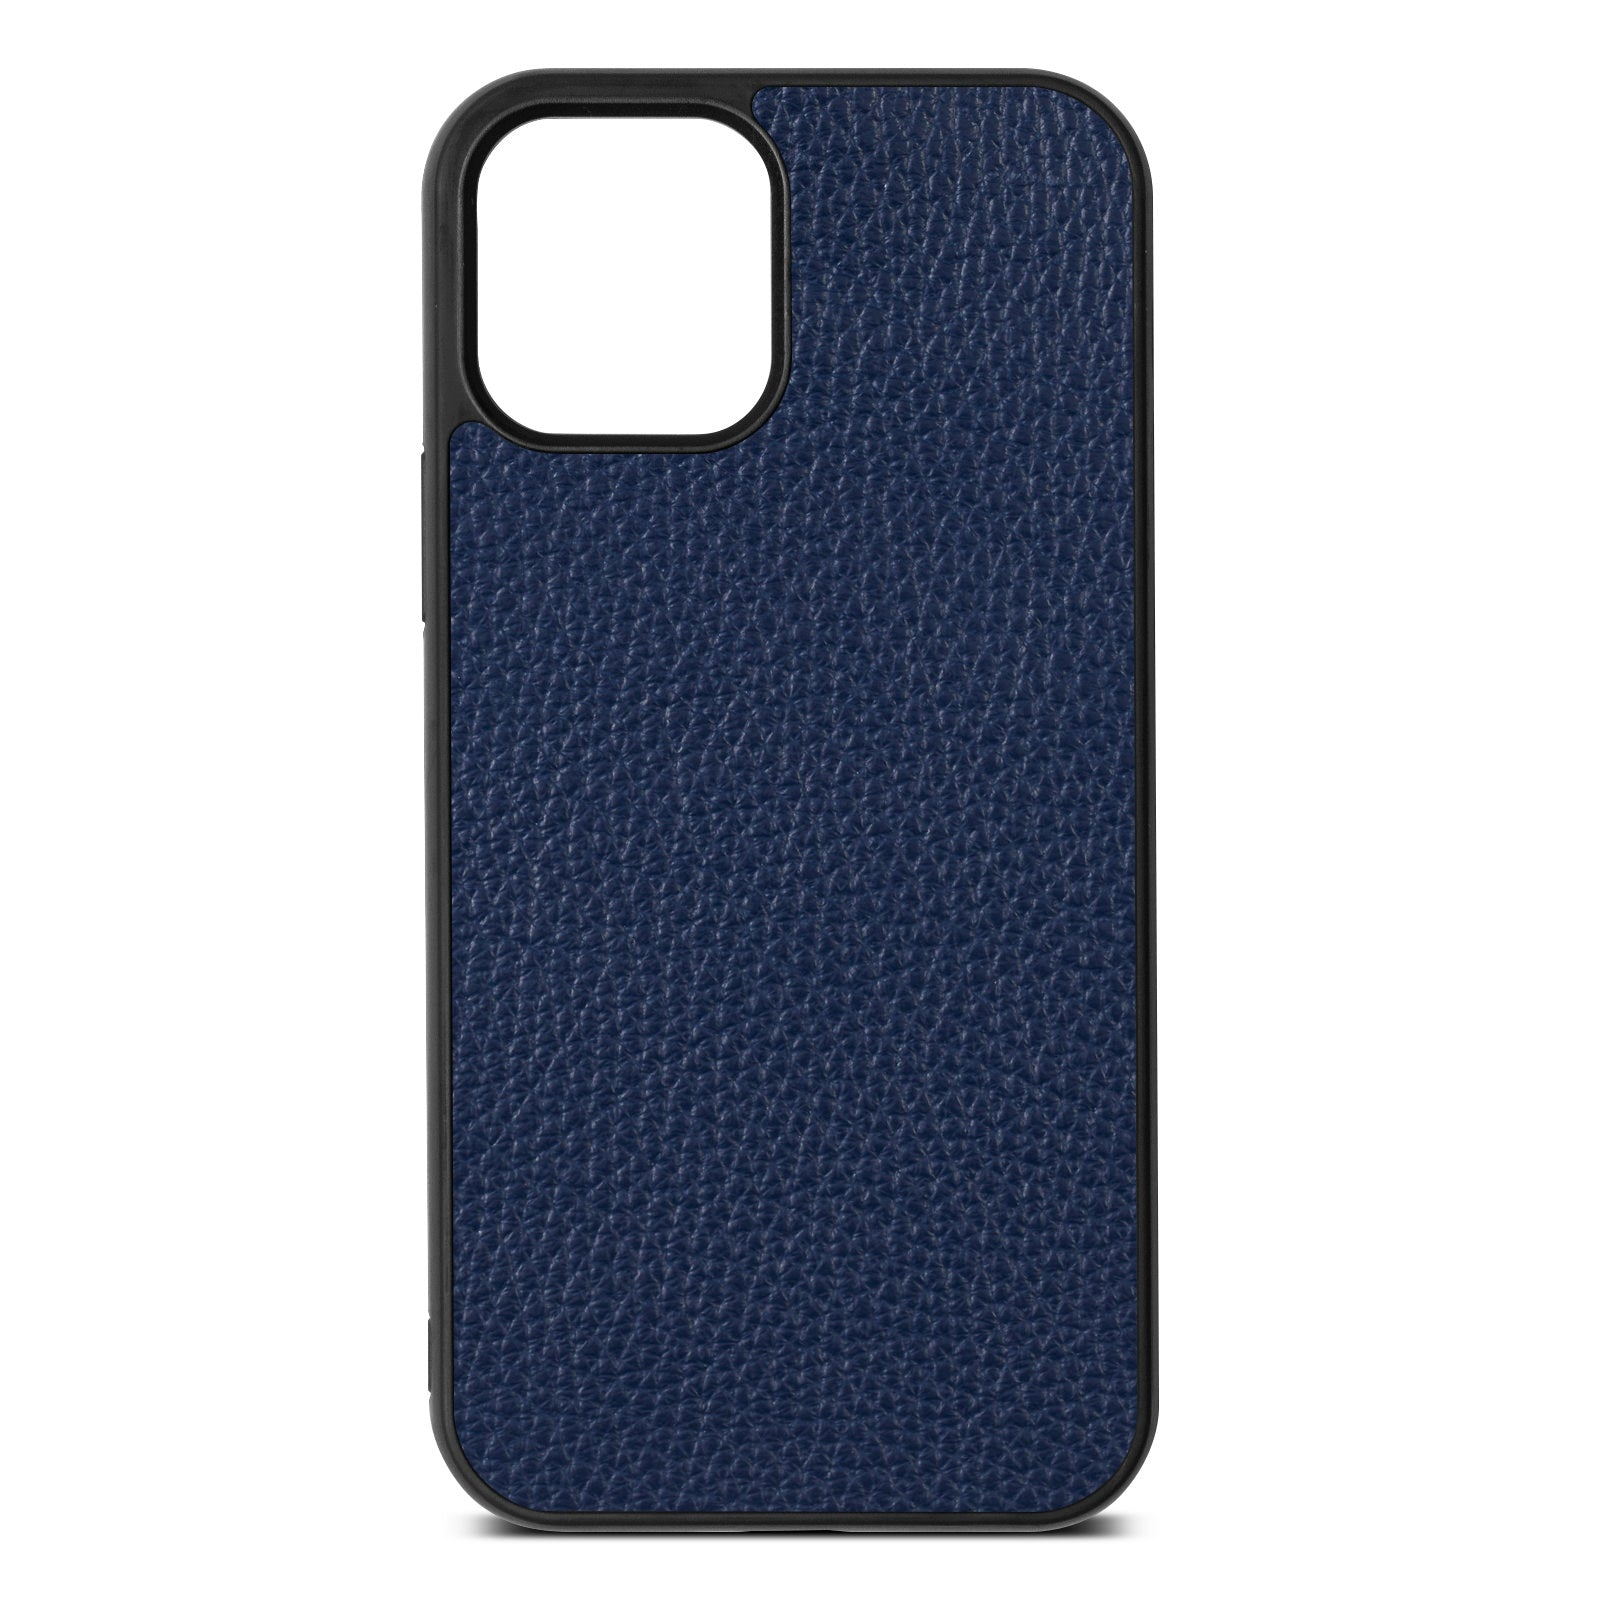 Blank iPhone 12 Navy Blue Pebble Grain Leather Case